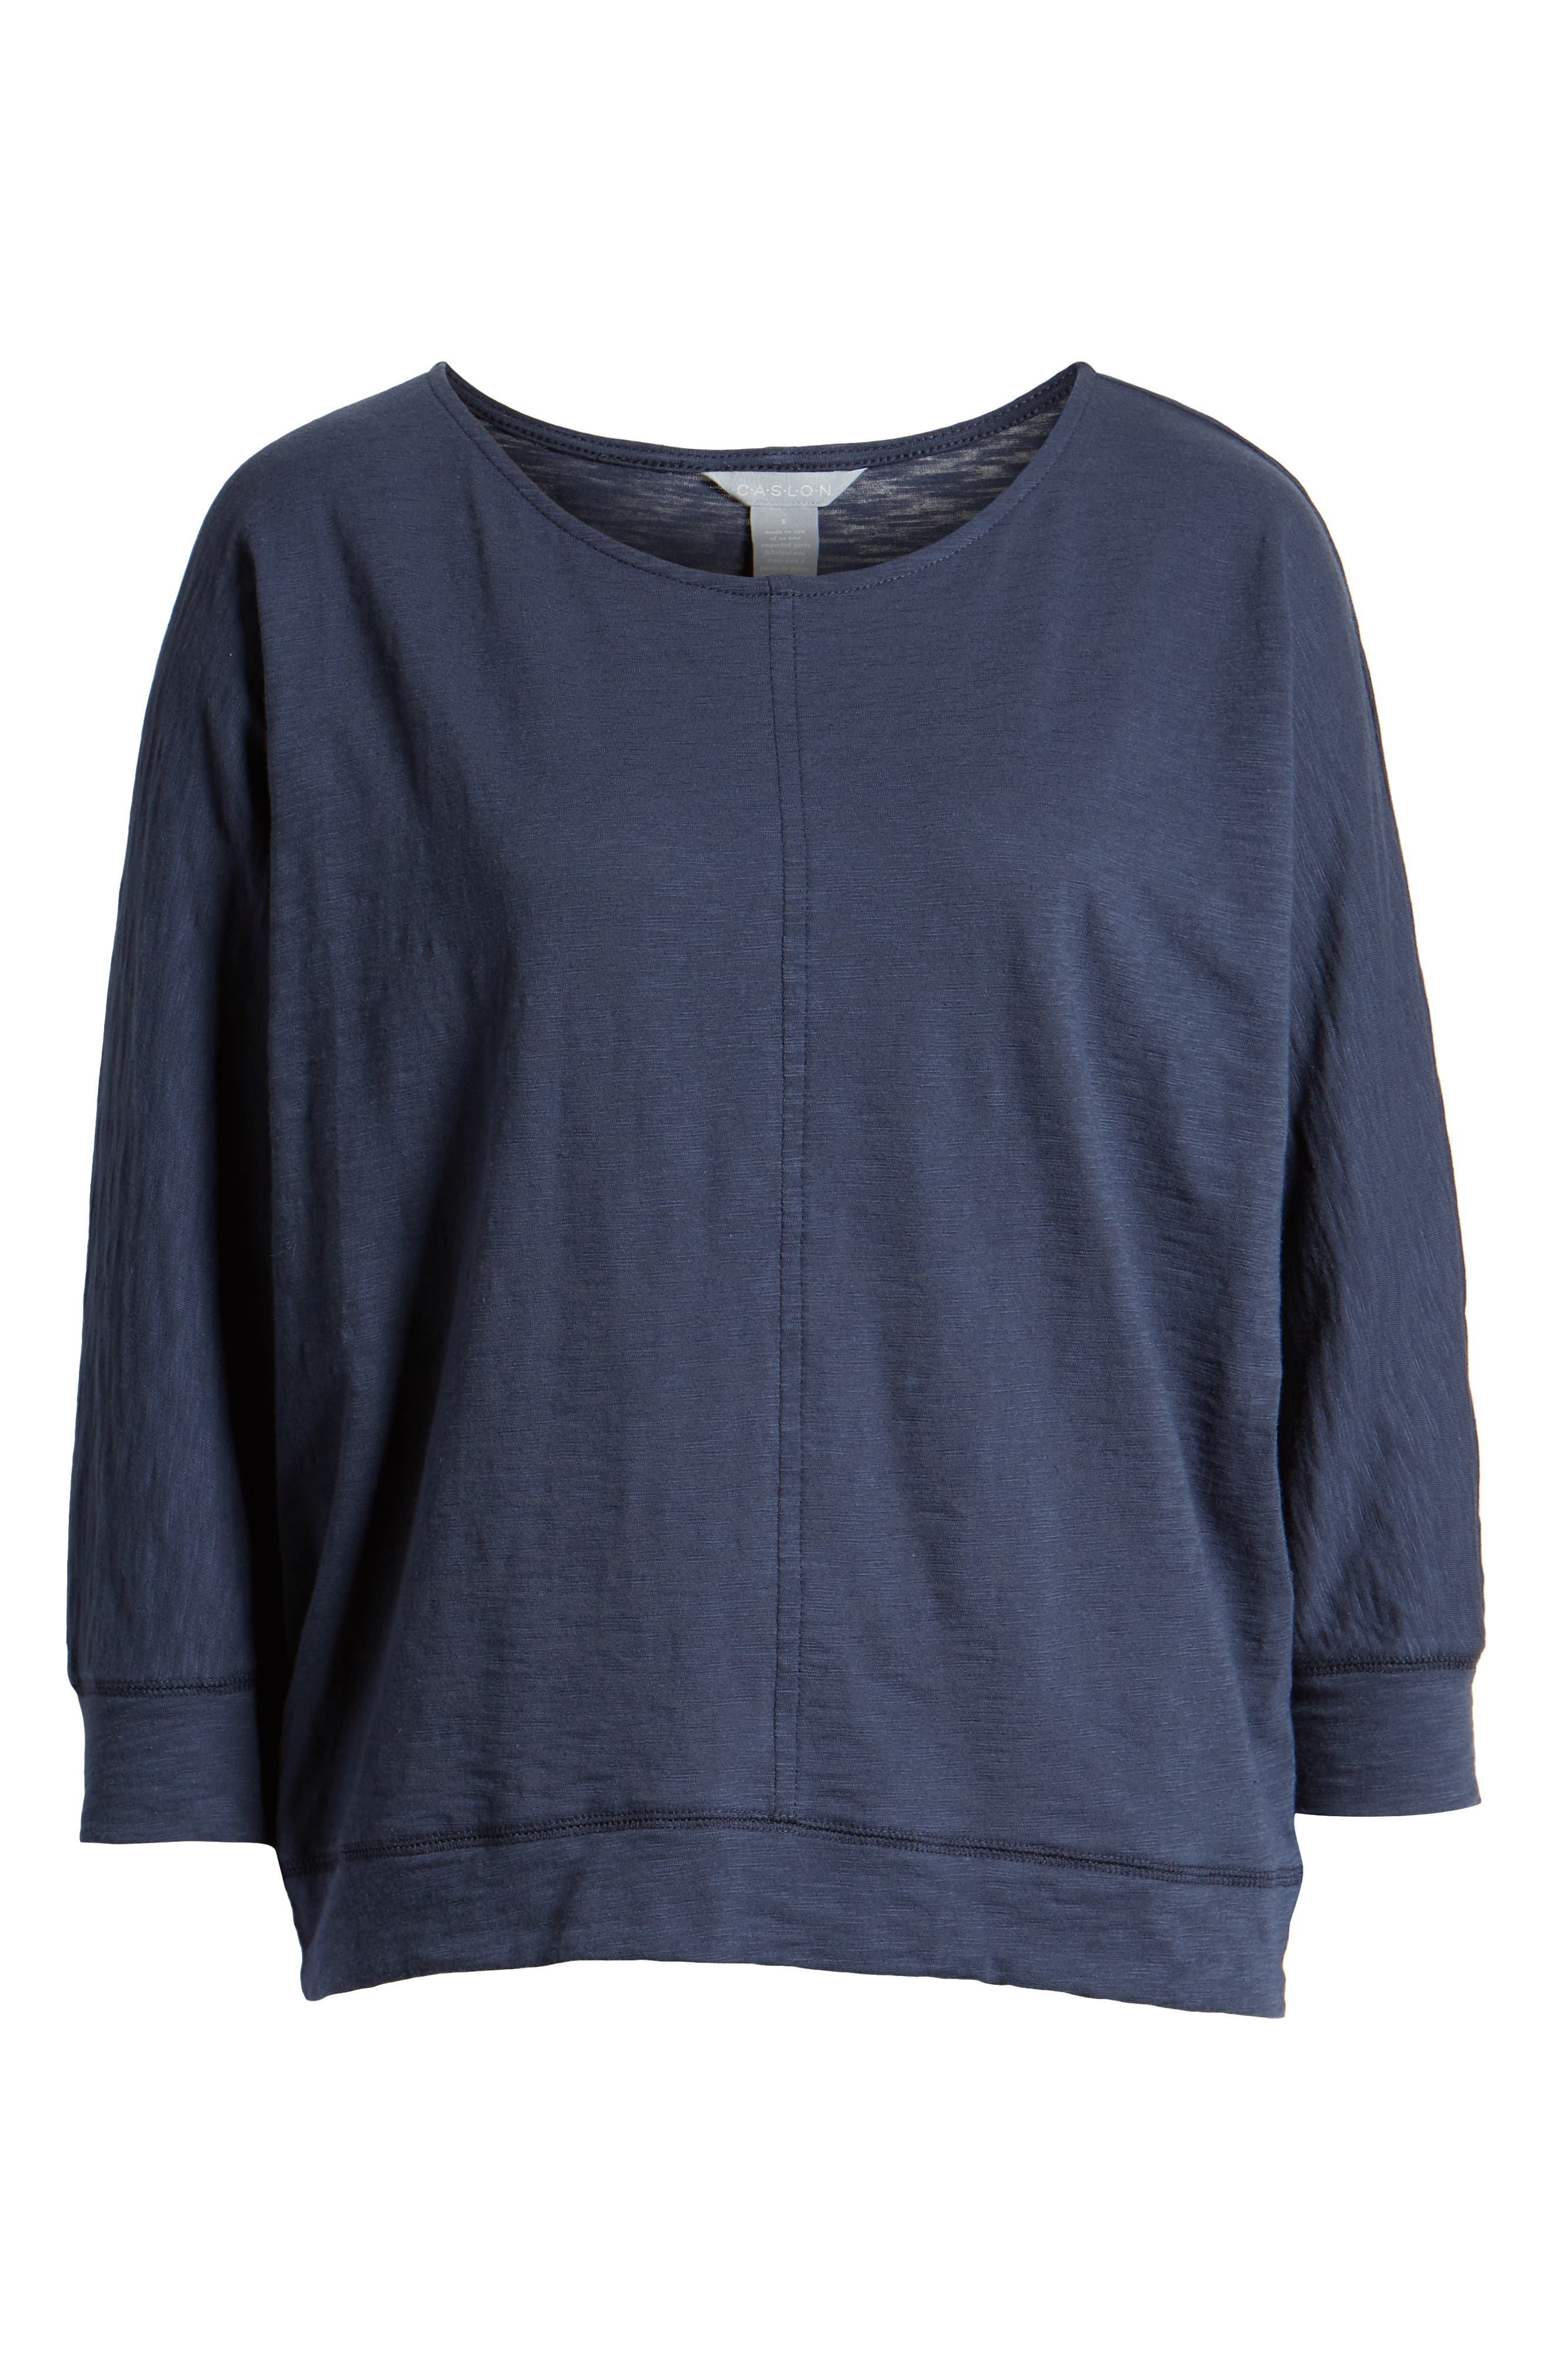 CASLON<SUP>®</SUP>,                             Off-Duty Dolman Sleeve Tee,                             Alternate thumbnail 6, color,                             NAVY PEACOAT